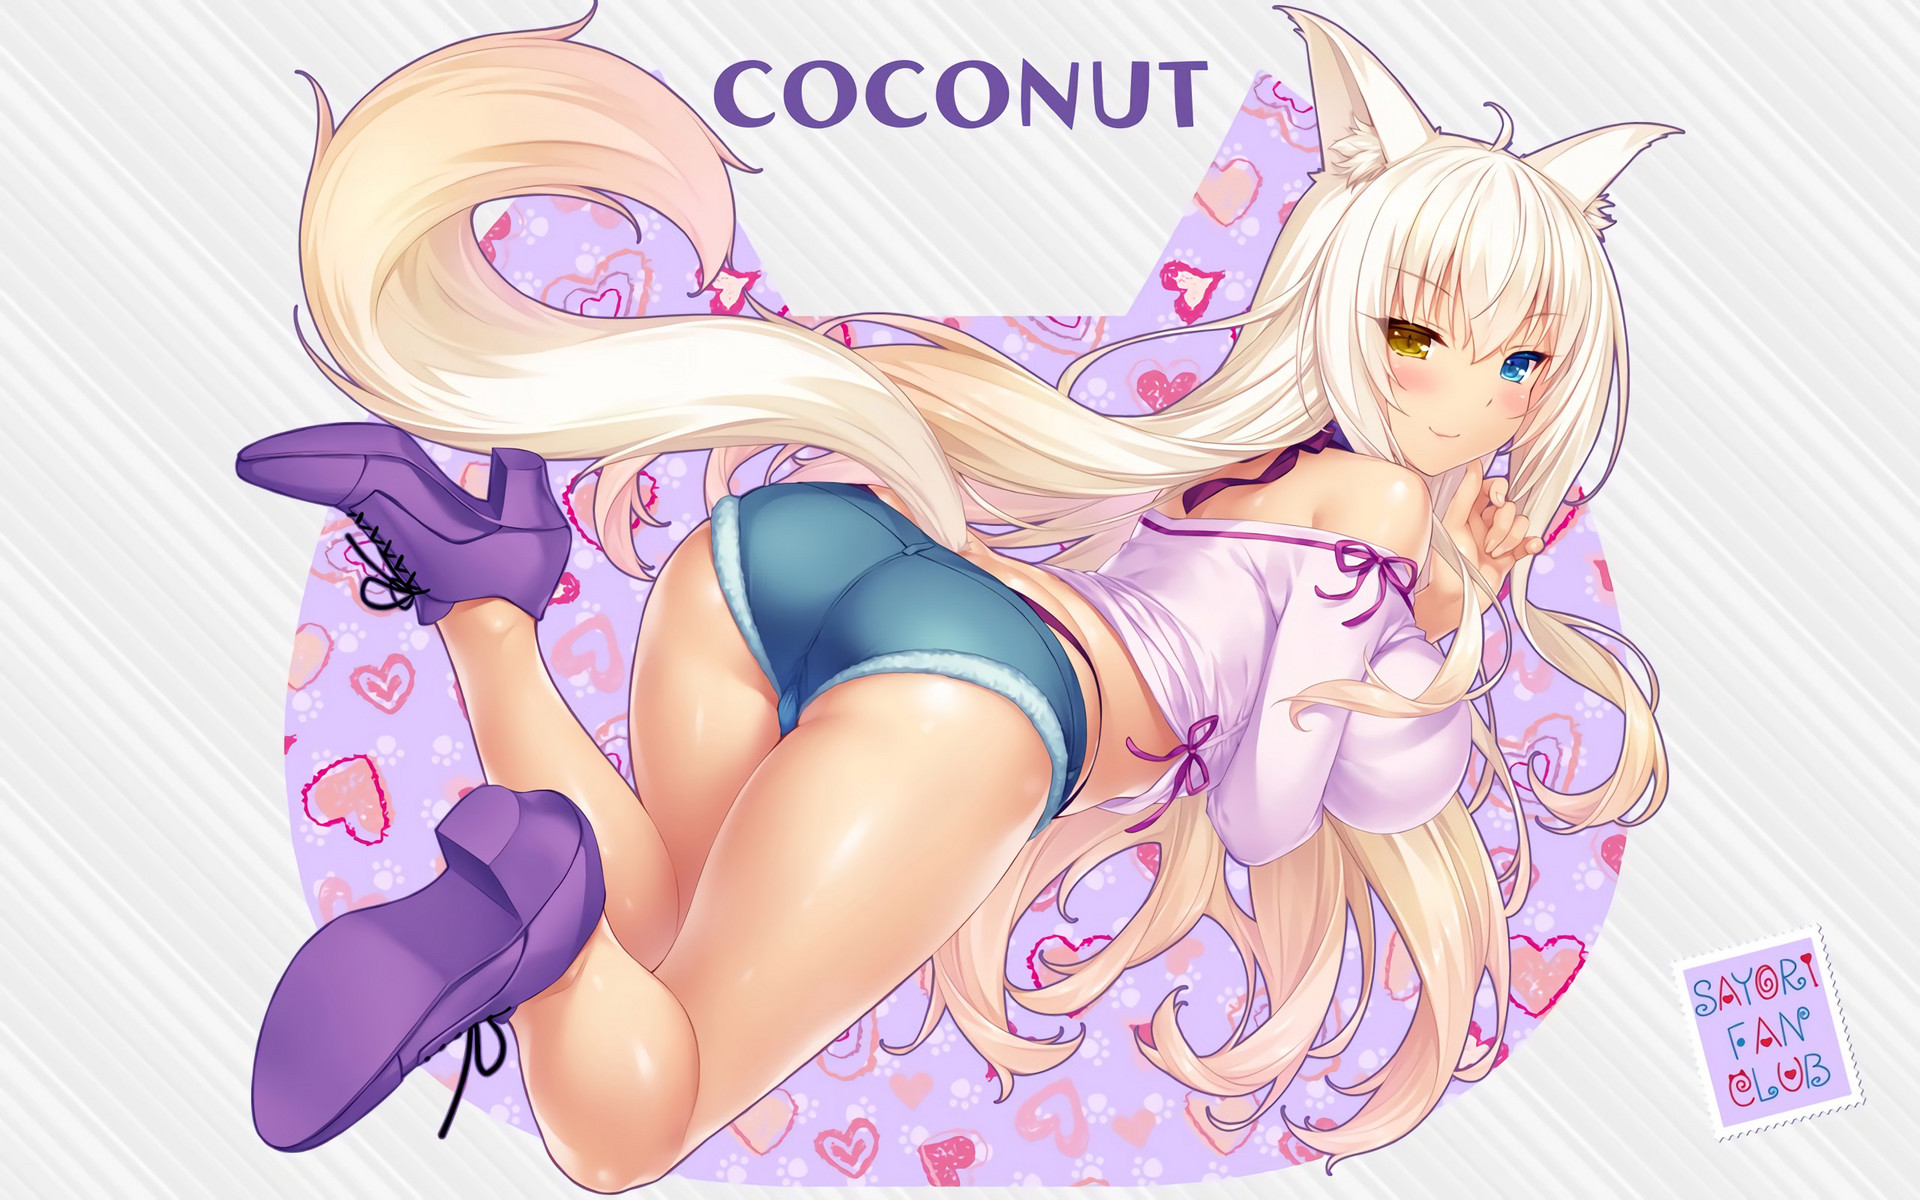 Coconut illustration by Sayori with Comfortable Denim by Hakoiri Musume from NekoPara 14